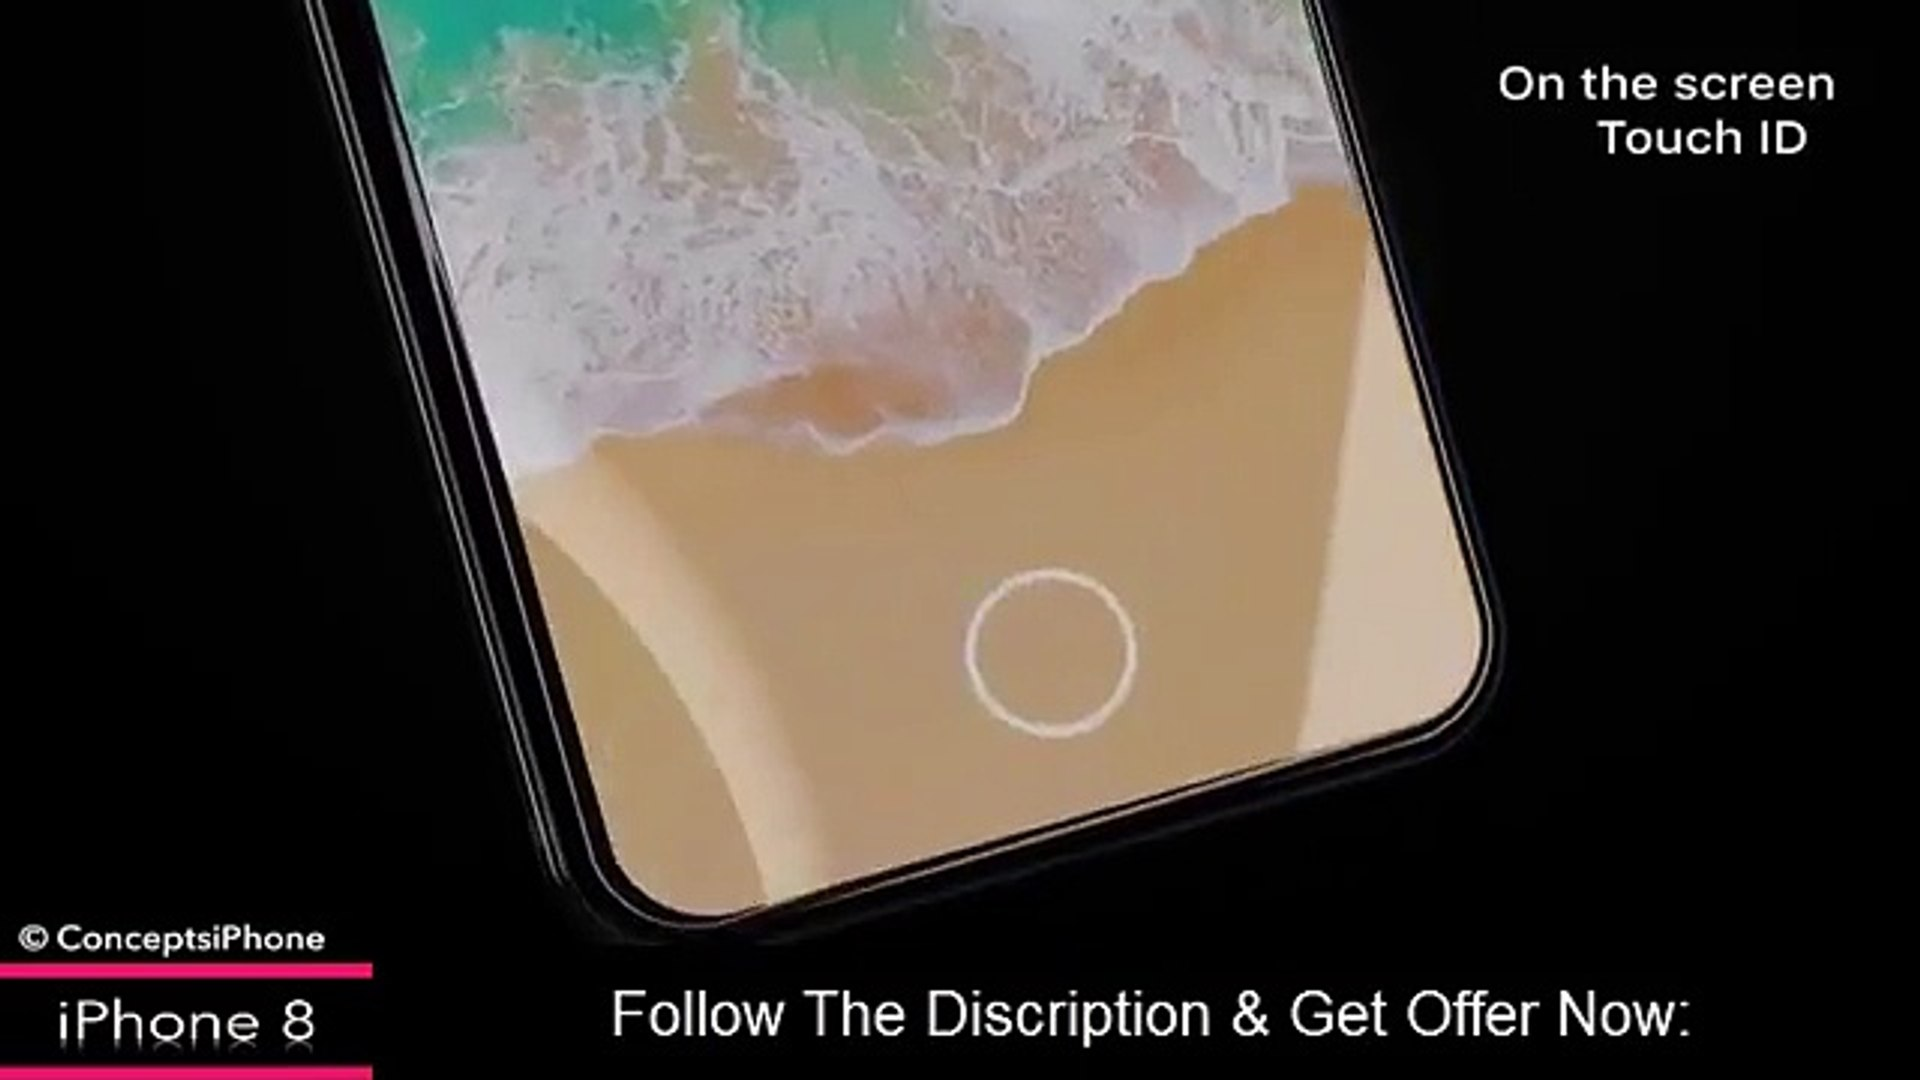 Apple Official iPhone 8 Trailer 2017, iPhone 8 Trailer 2017, iPhone 8 Trailer,iPhone 8